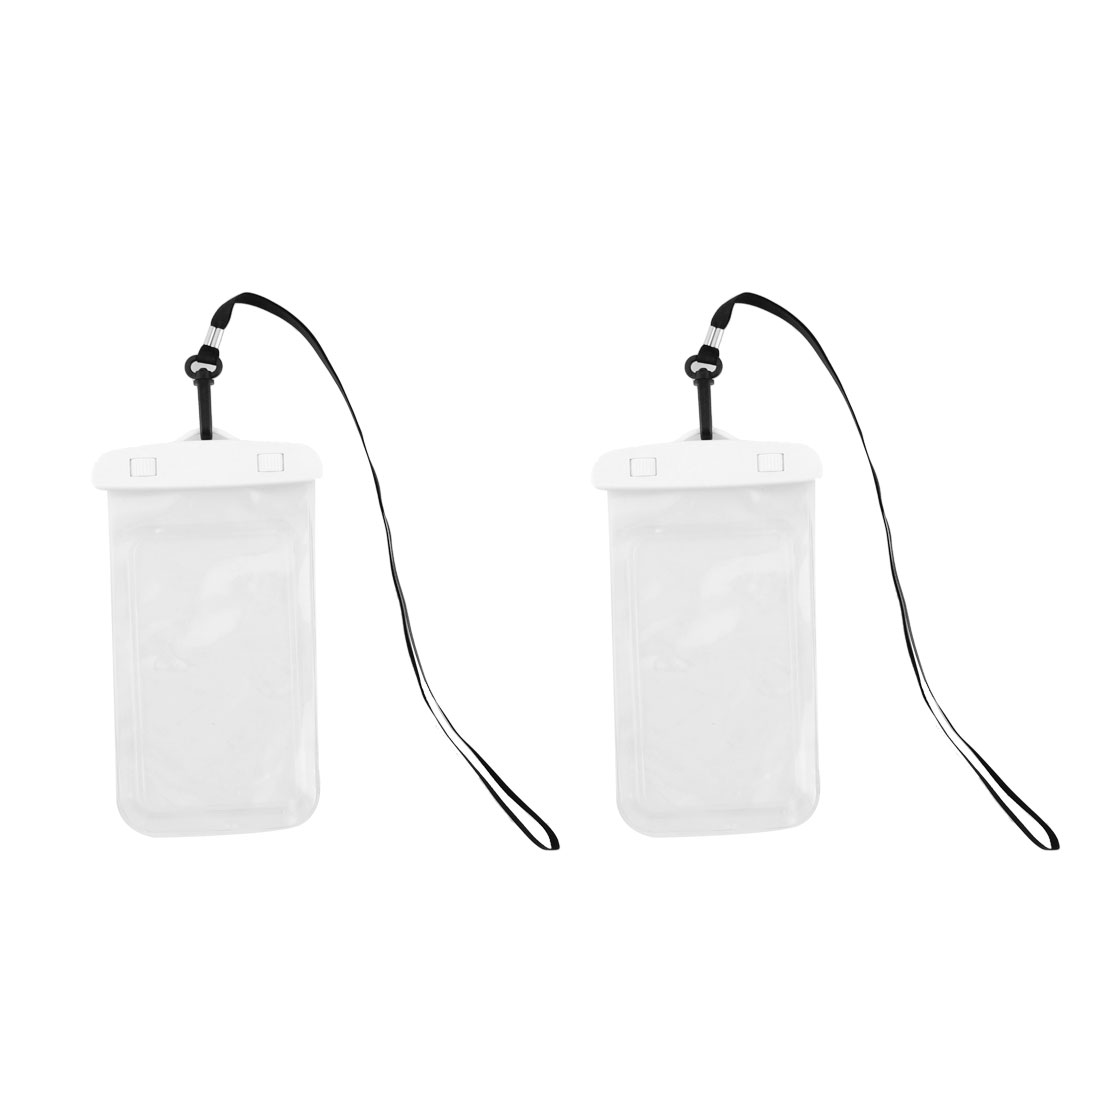 Phone PVC Water Resistant Dust Snow Proof Bag Holder Pouch White 2 Pcs